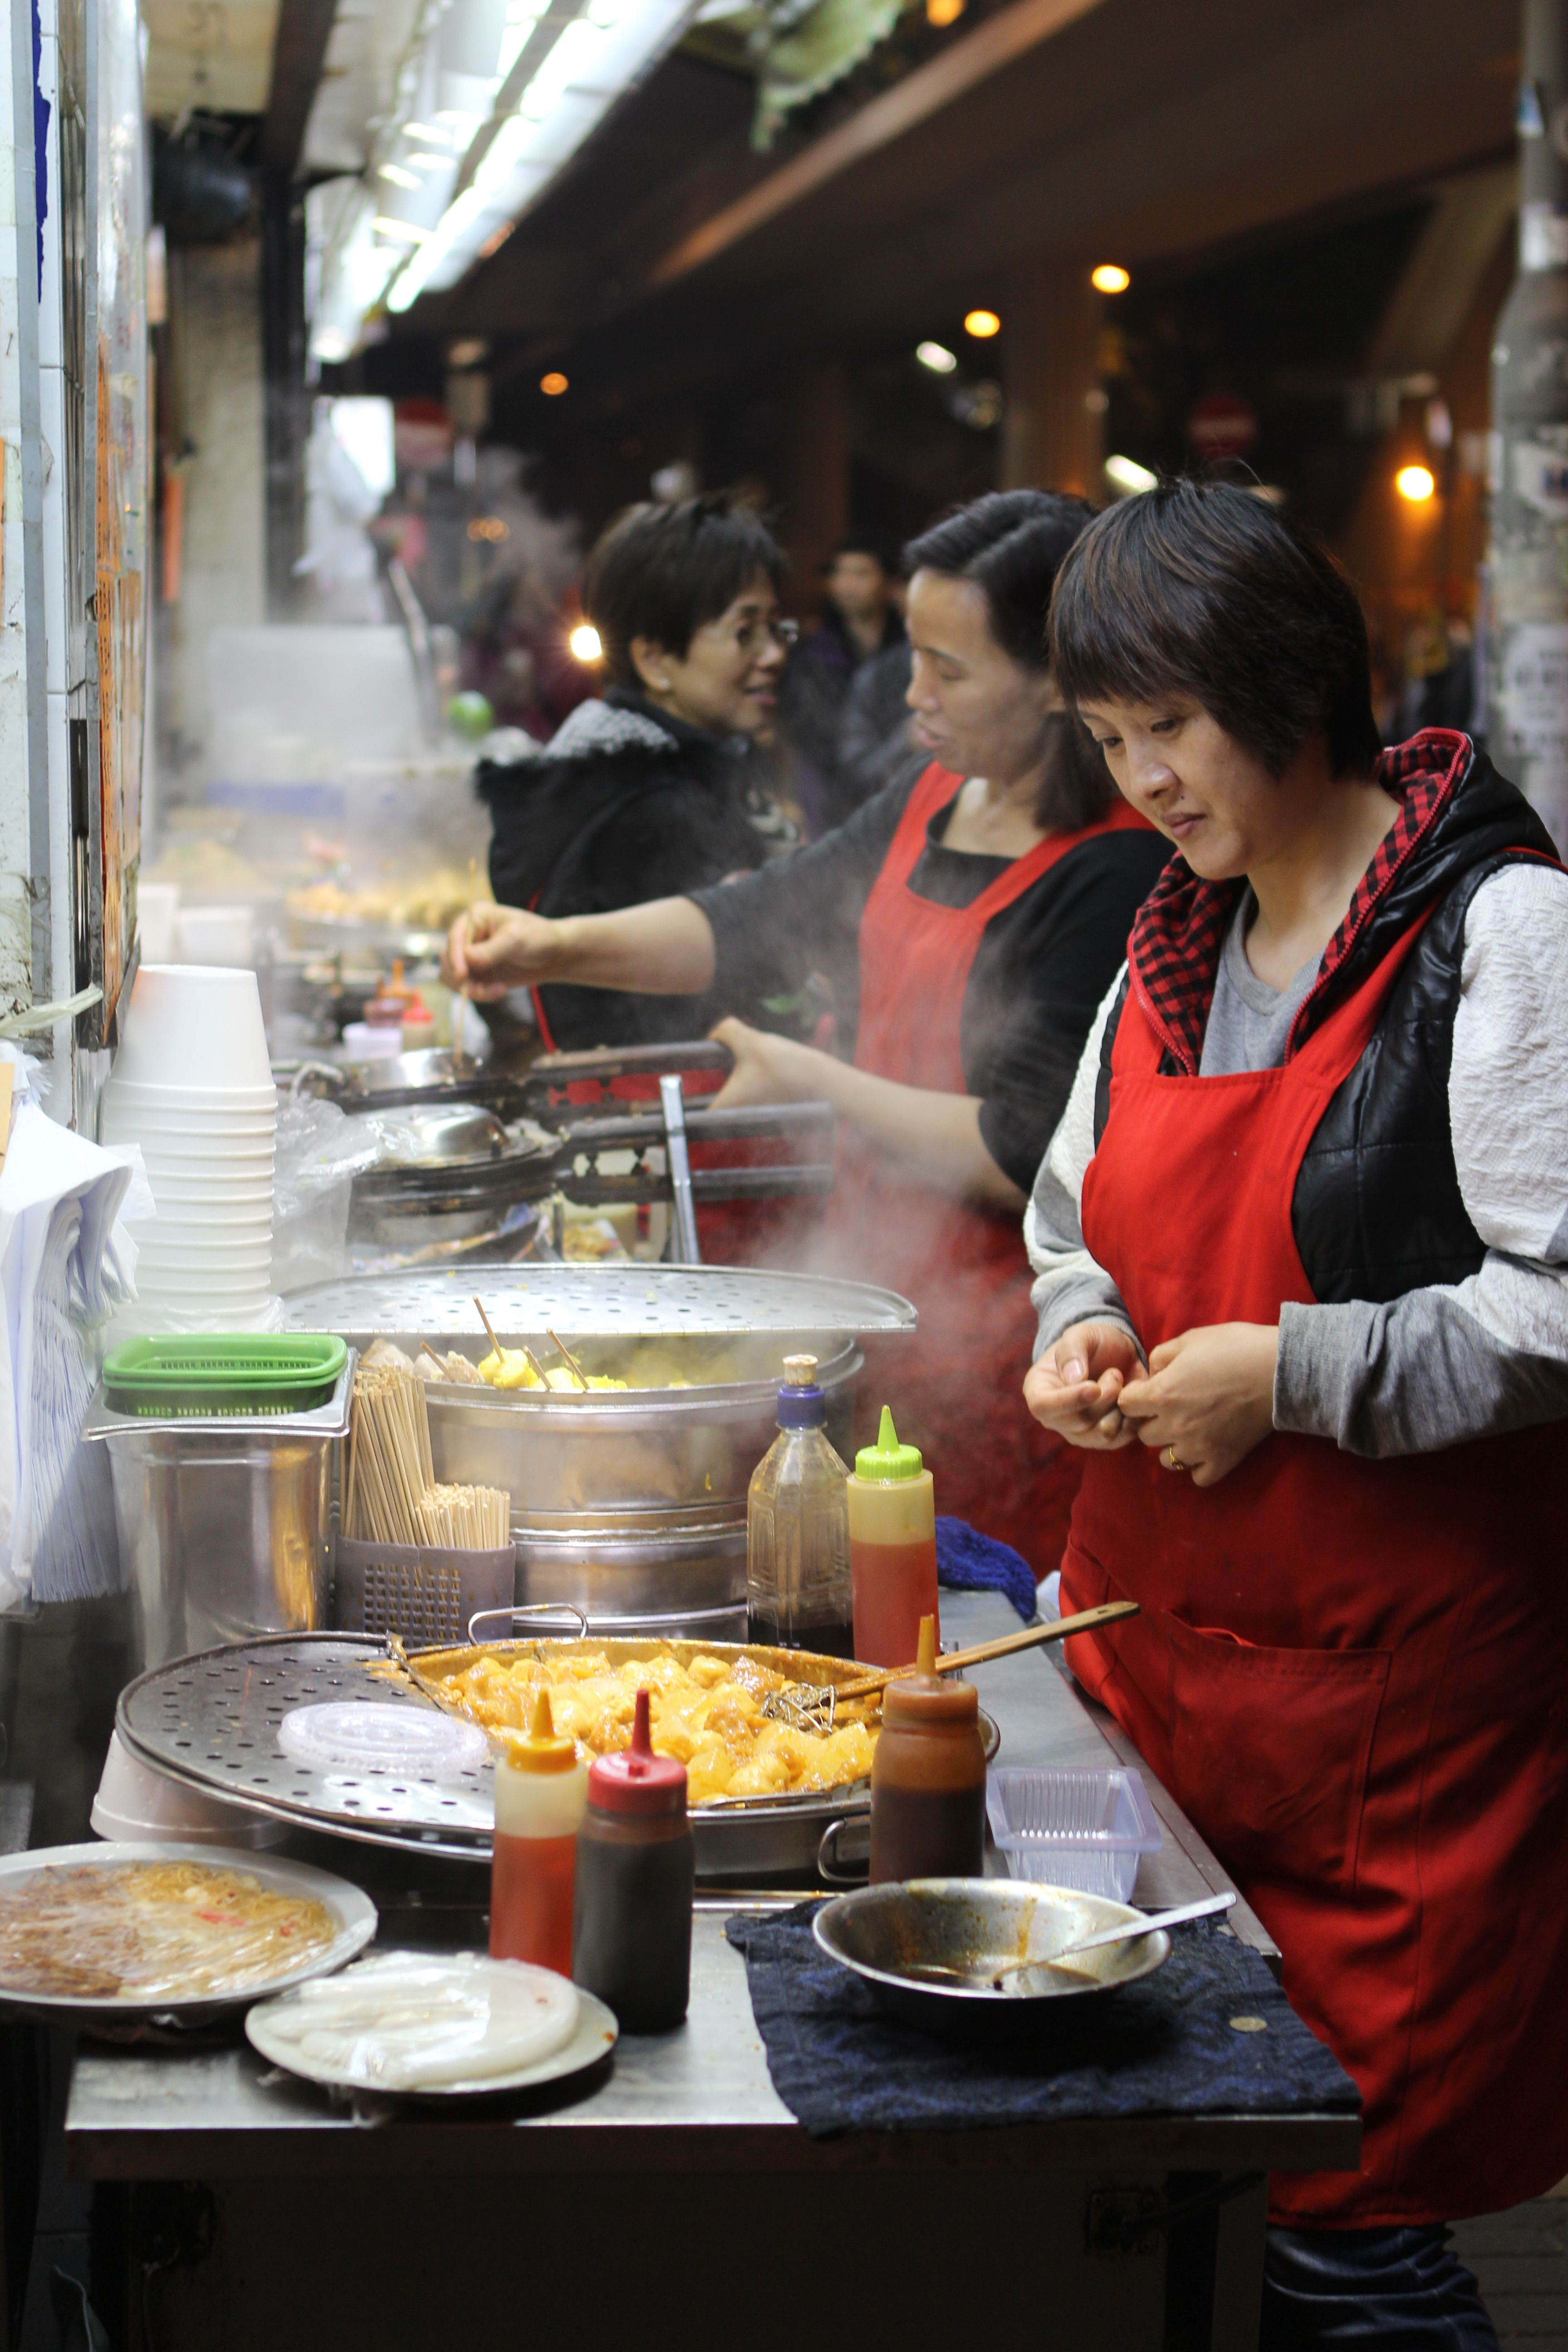 Chinese Street Food China Street Market Chinese Food Hong Kong Stage In Cina World Street Food Chinese Street Food Street Food